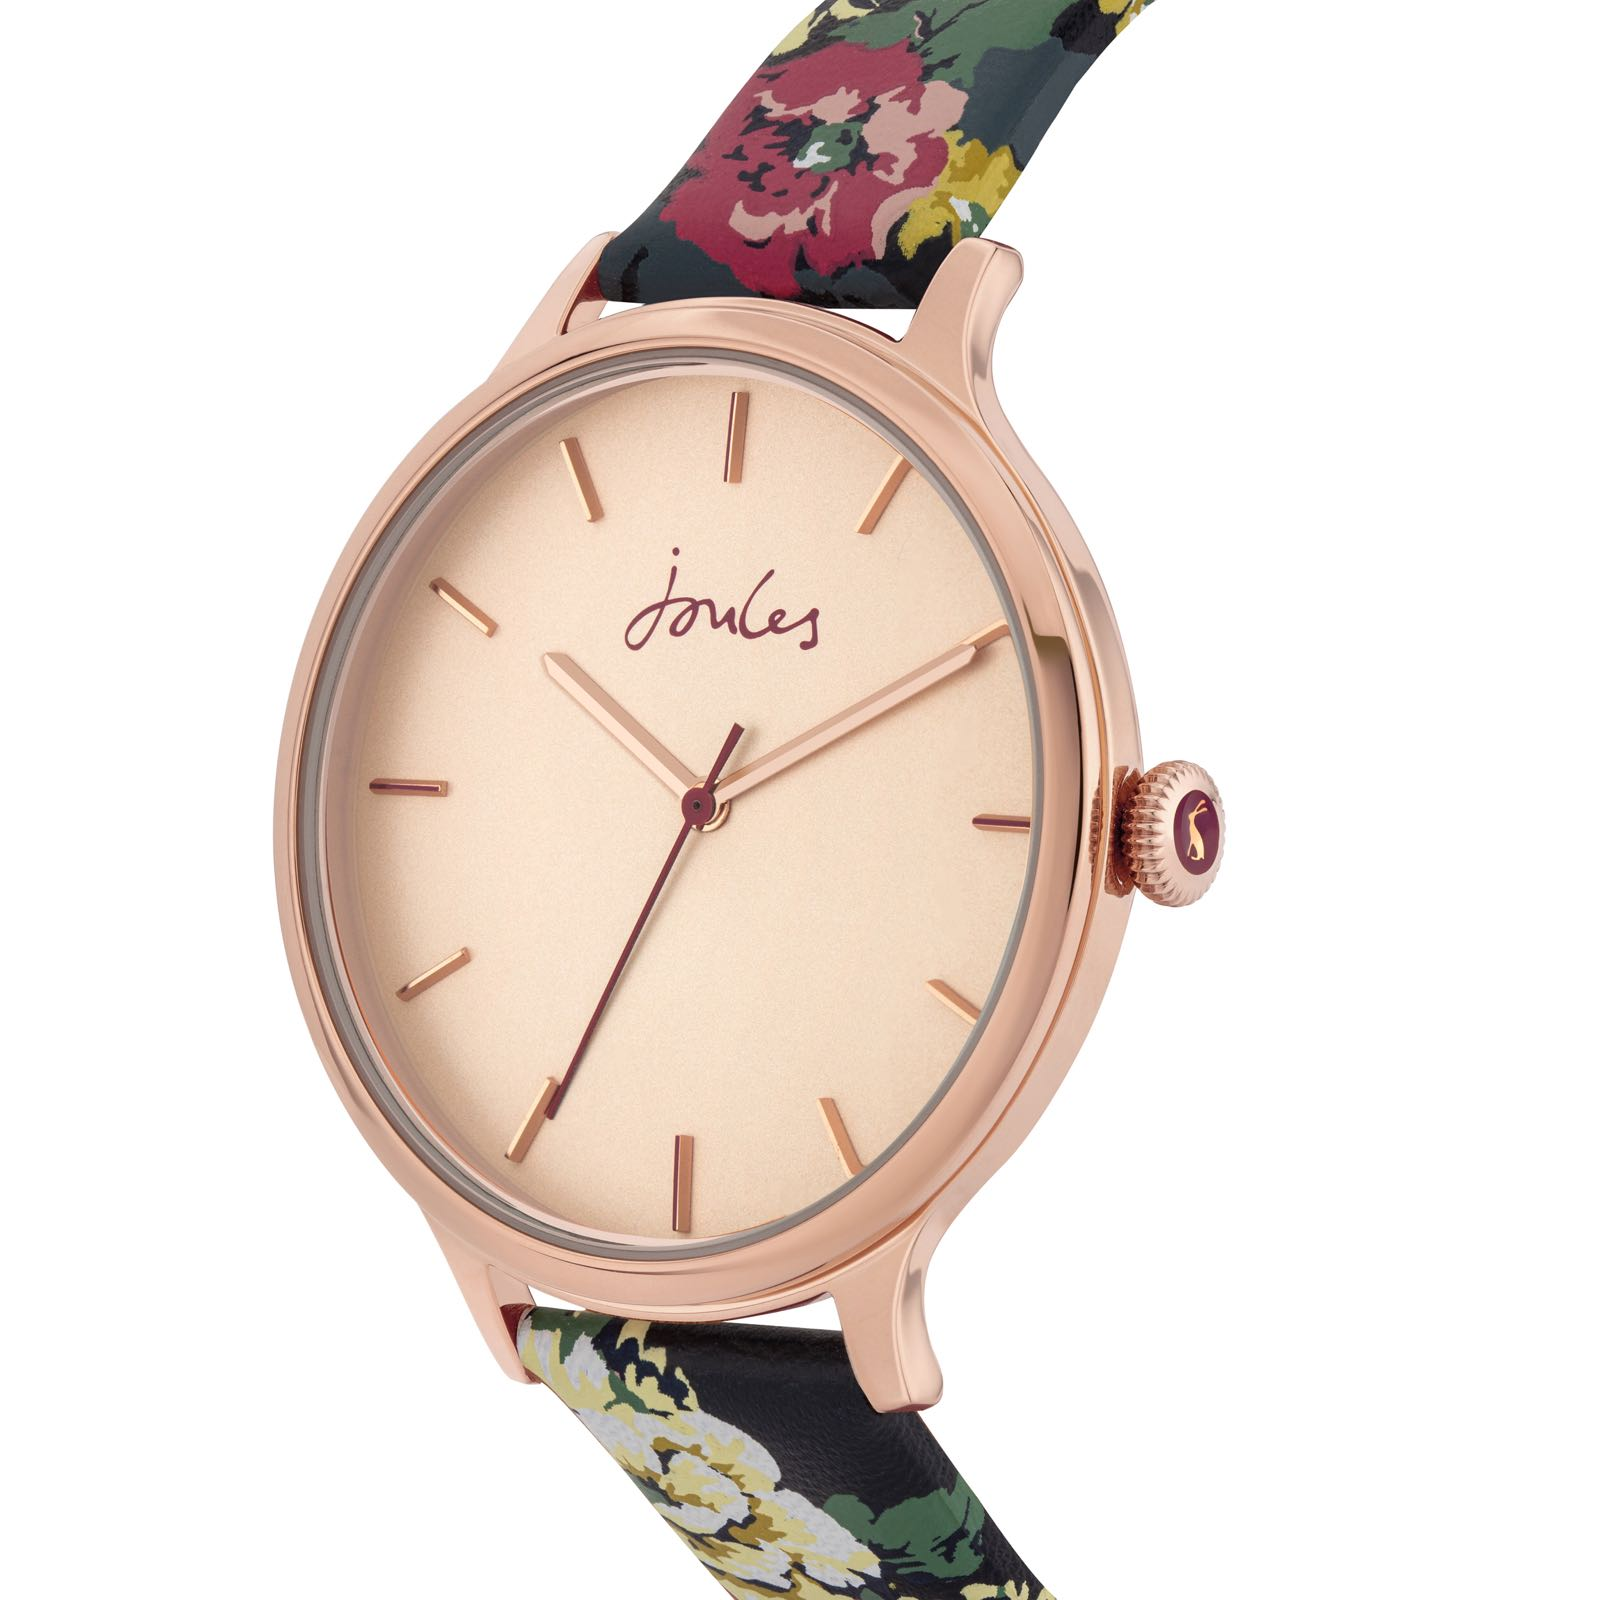 Joules 30th Anniversary Cambridge floral print watch